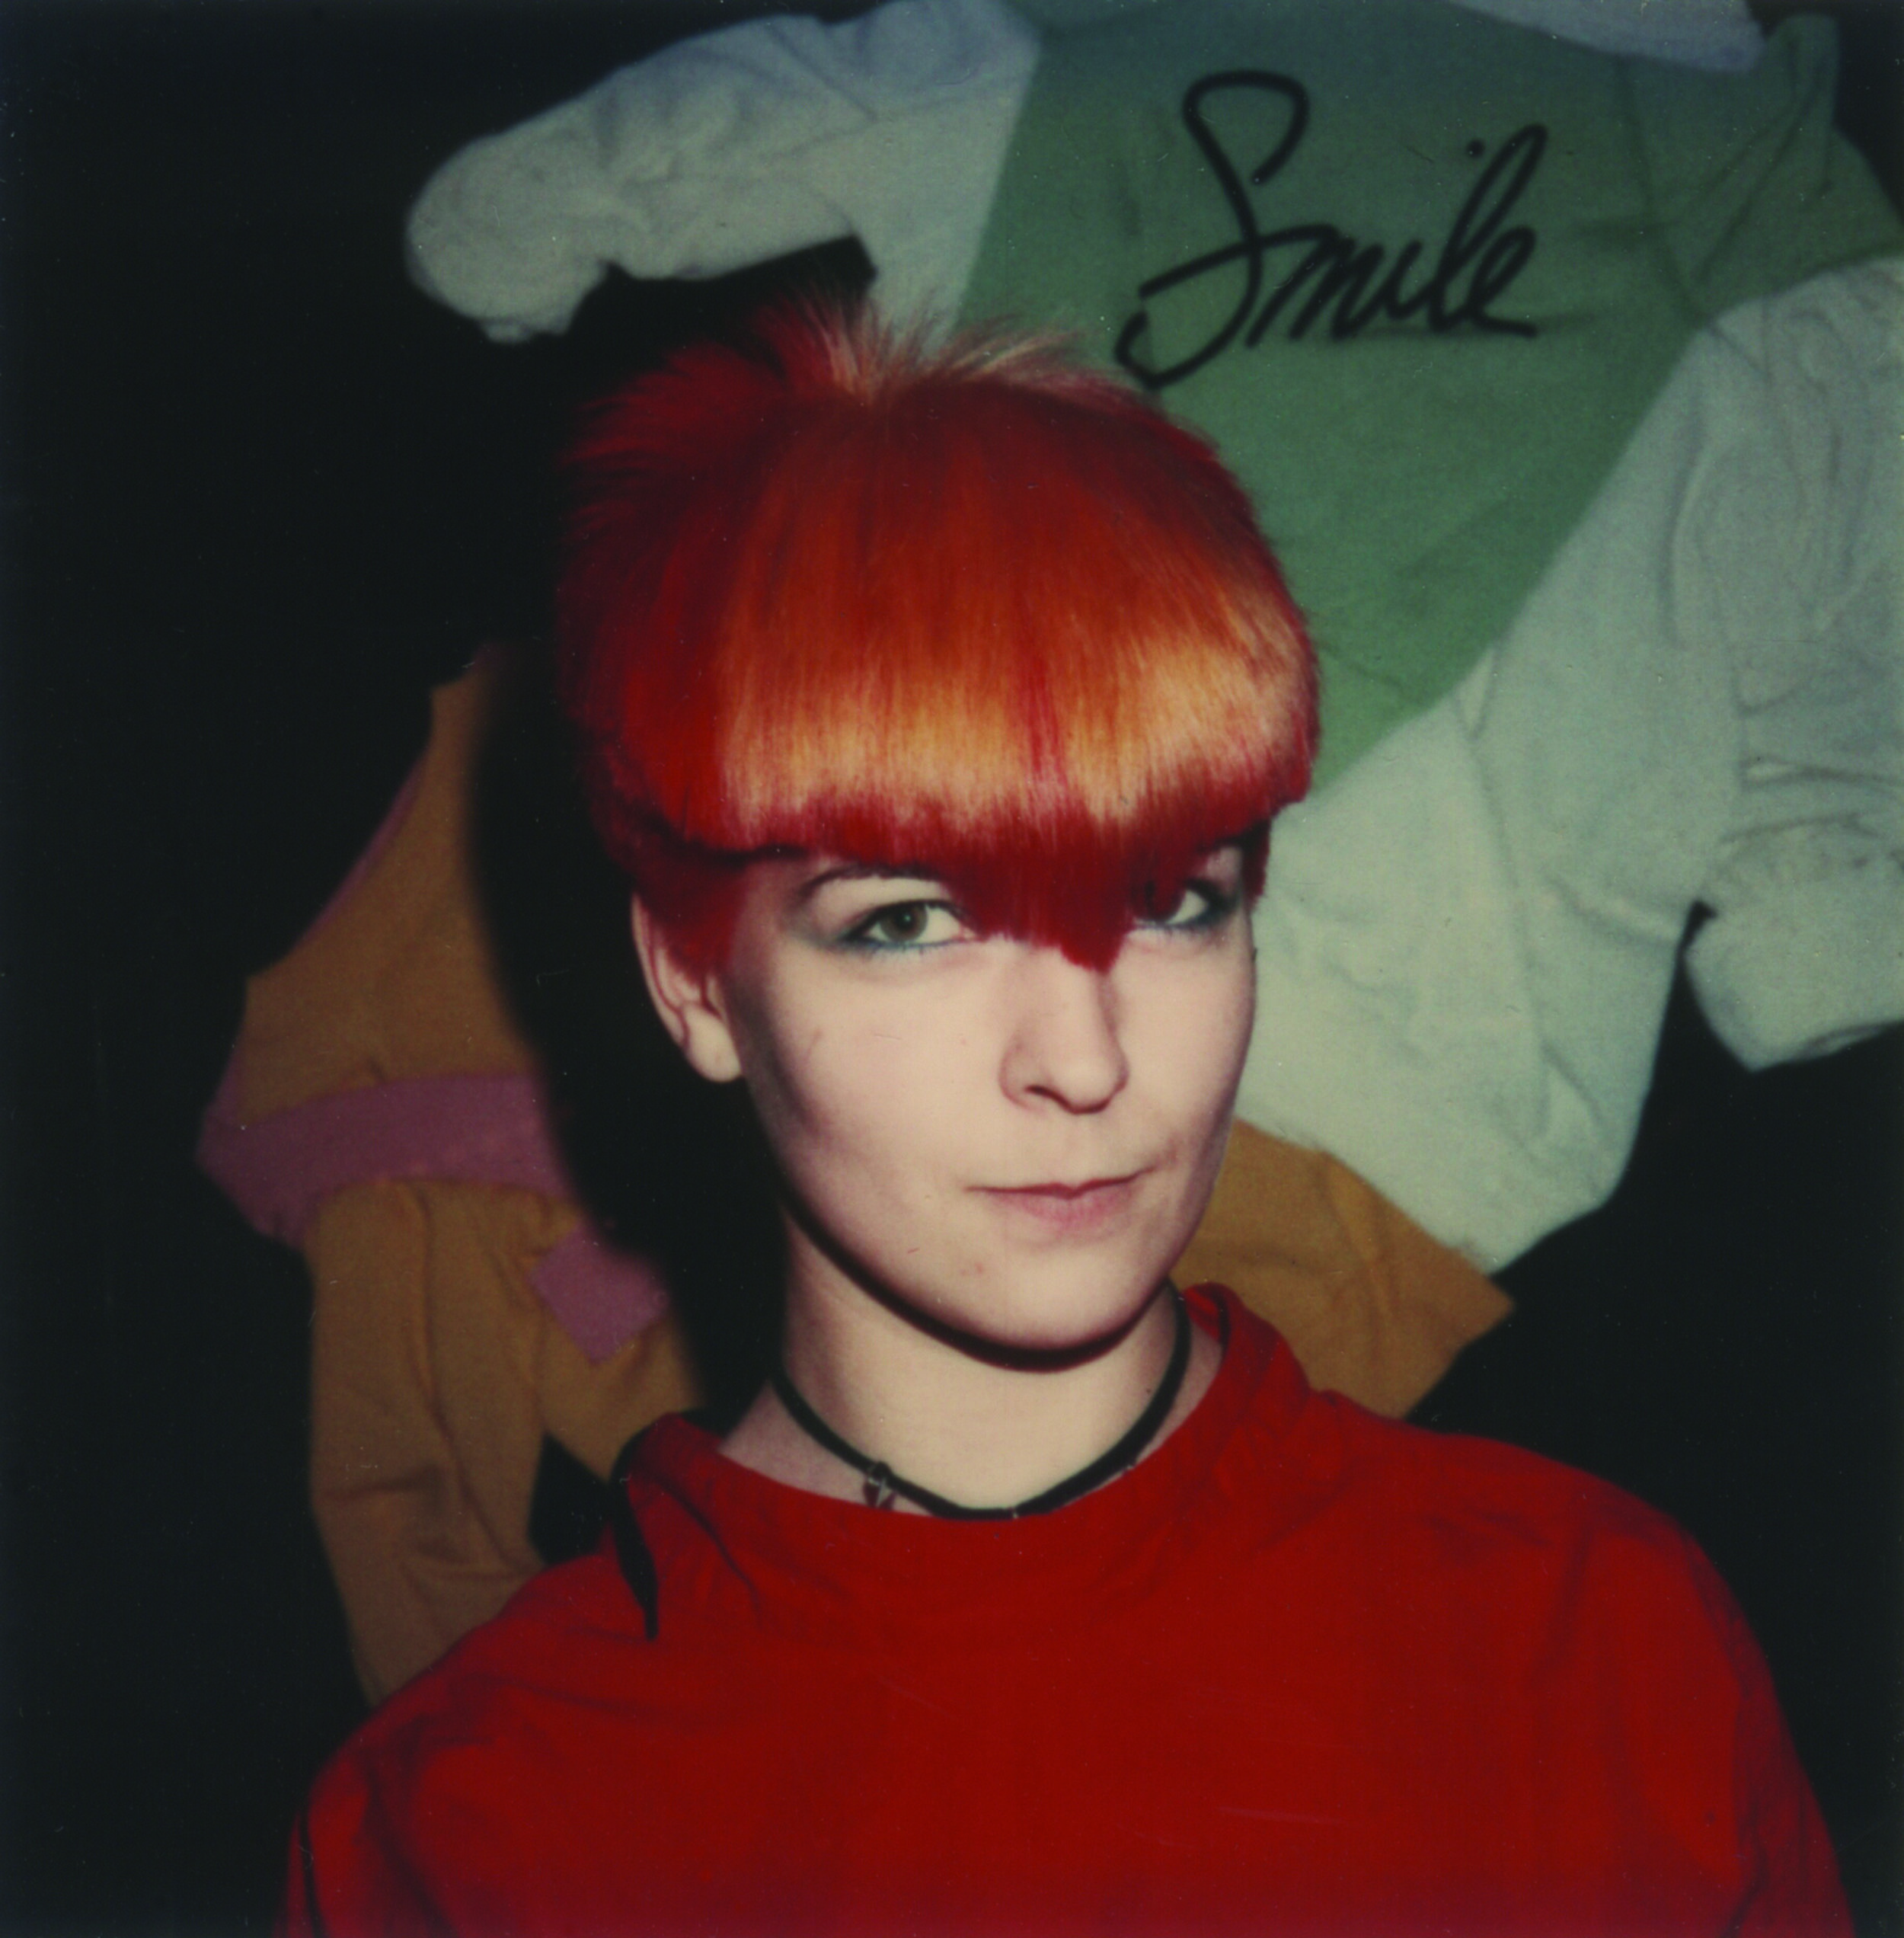 Toyah Wilcox with hair by Keith at Smile, London (Early 1980s) - Image courtesy of Keith Wainwright for Homesick Magazine Issue #3   www.youtube.com